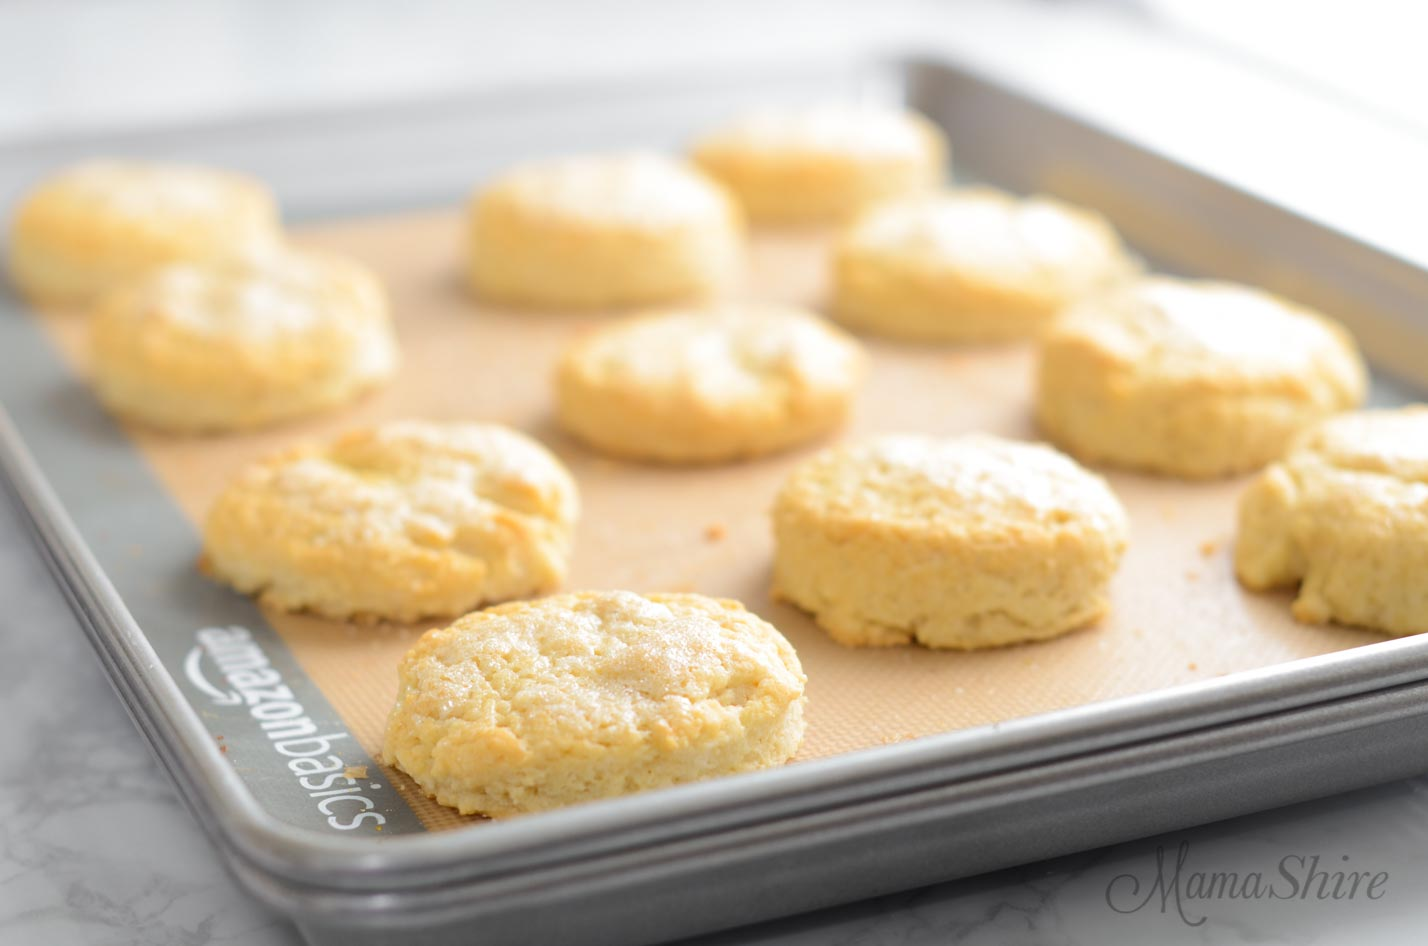 Gluten-free shortcakes that have been baked on double baking pans to prevent the browning on the bottom.